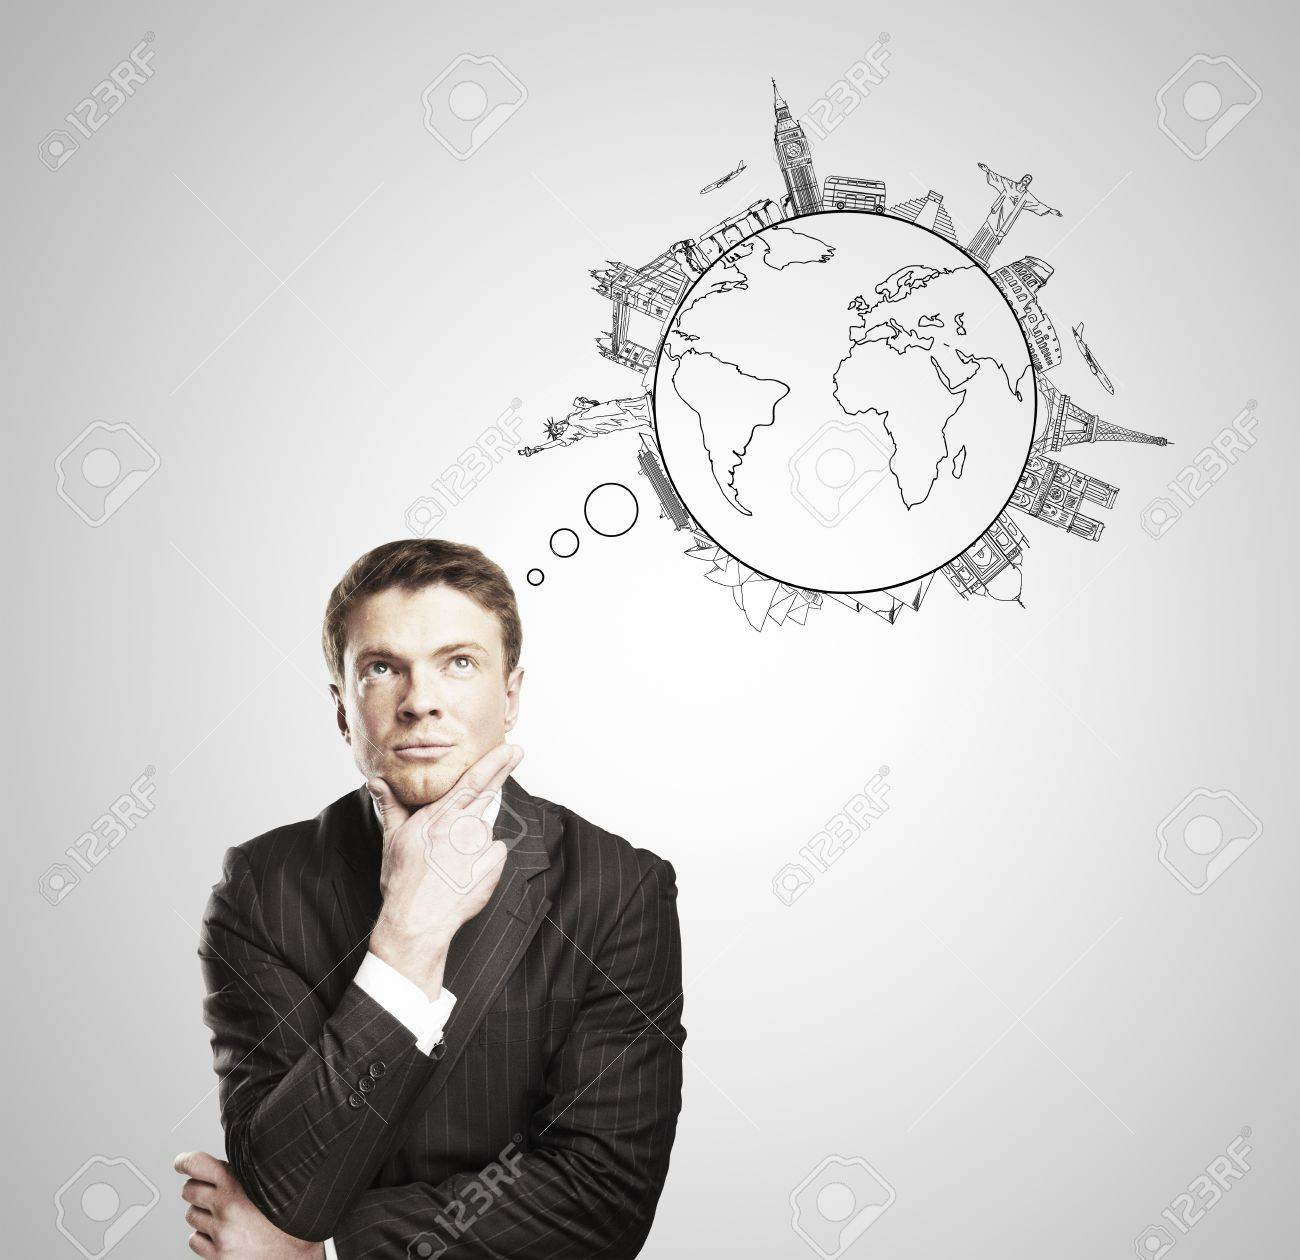 Young Image Travelling Dreaming Royalty Man Stock Image Photo Pensive And Free 14625959 Picture